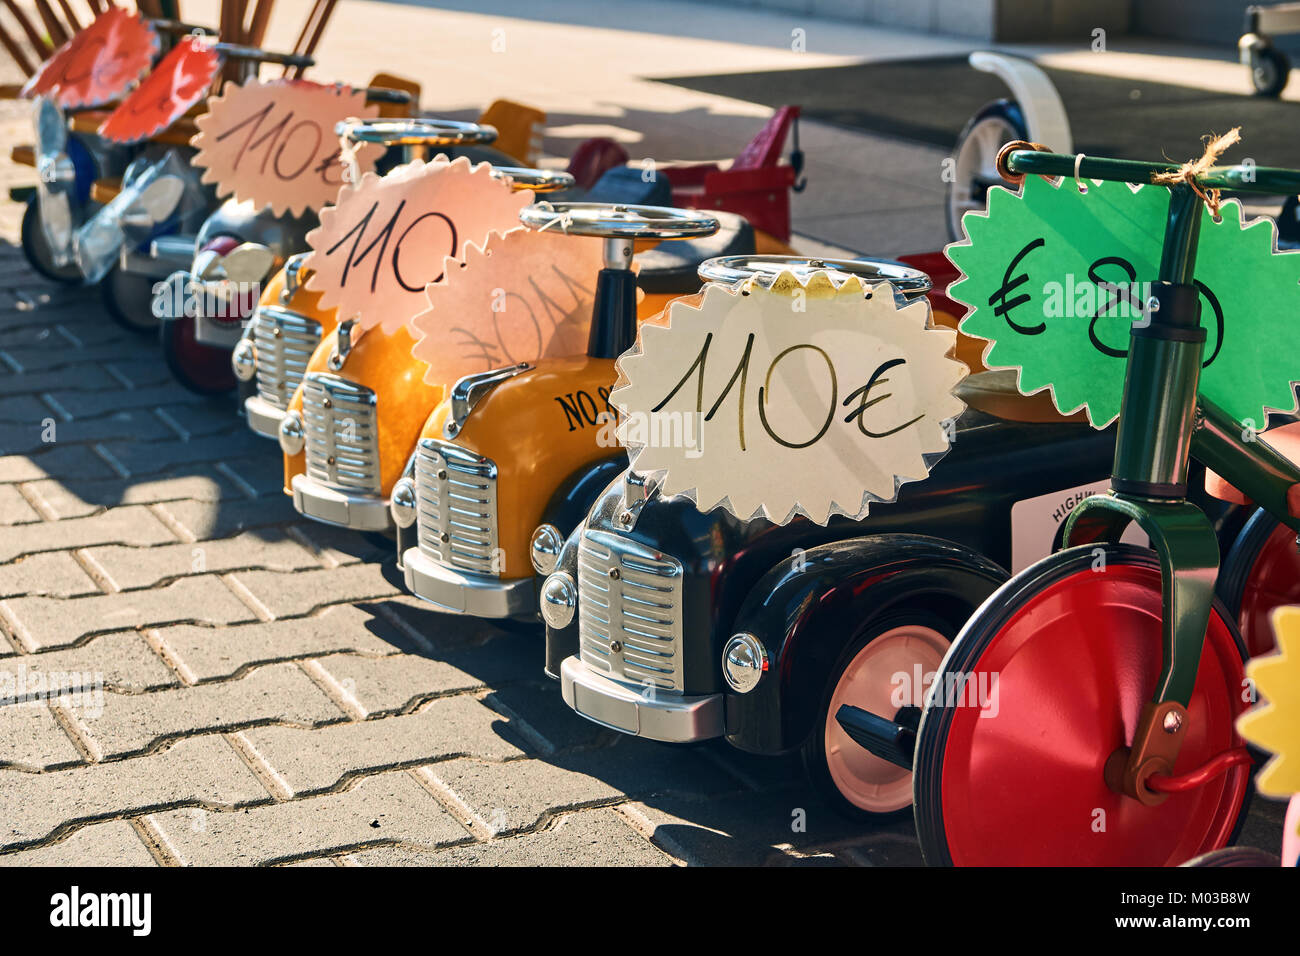 Toy cars being sold on the street - Stock Image